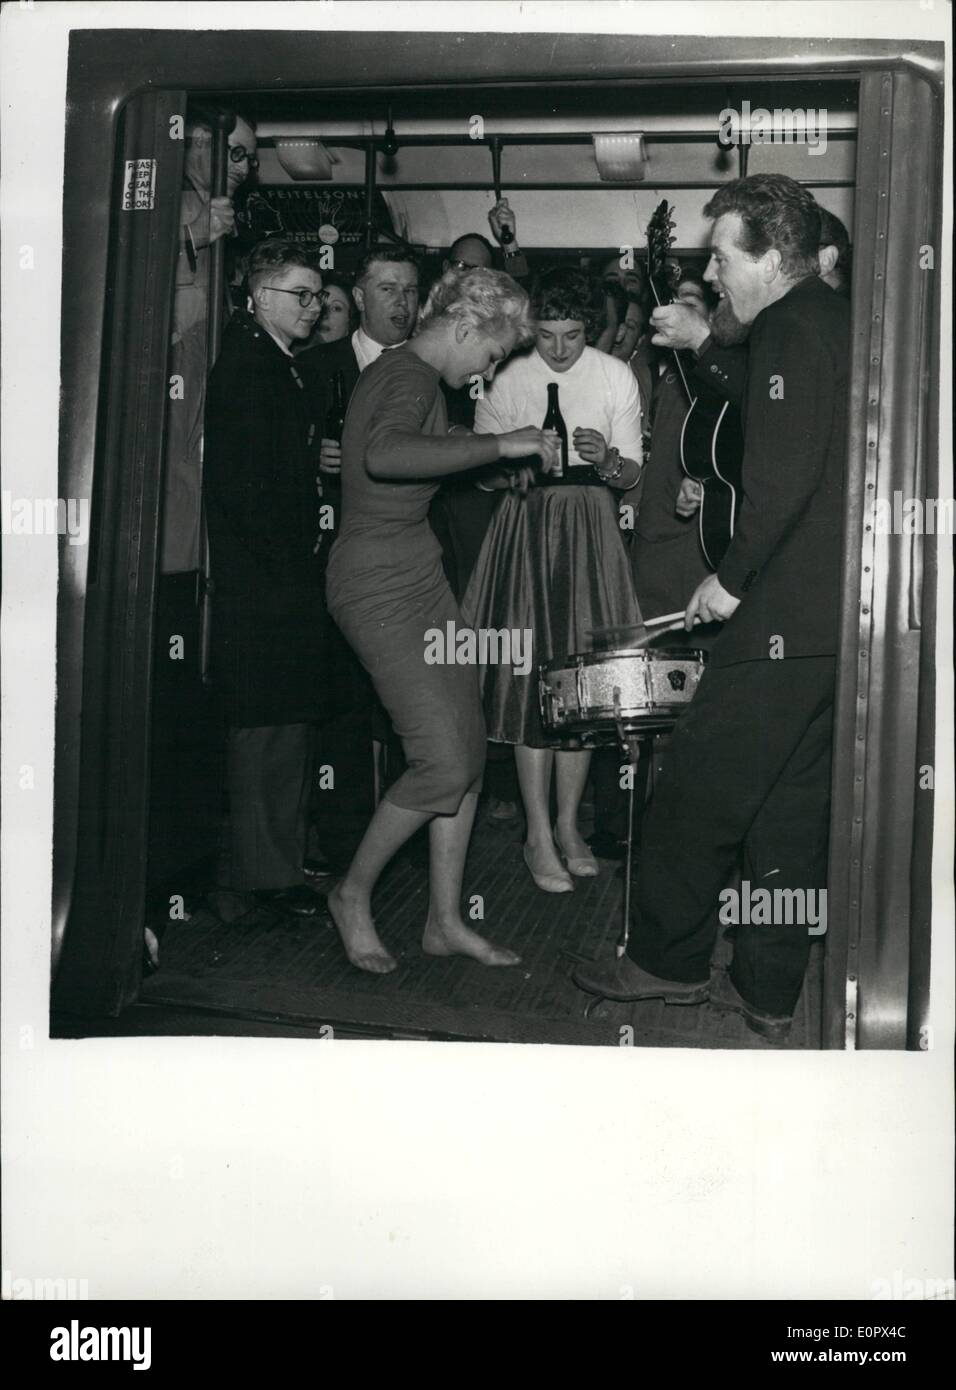 Apr. 04, 1957 - The Most fantastic party on a tube train the Hon. Gerald Lascelles goes rockin: The smart set went Underground last night and rocked non stop around the Inner Circle route from Charing Cross to Charing Cross. They skiffled and rocked their way through Euston, Kings Cross, Farringdon, and Edgware-road. And the price of the round tour was two shillings.That's what each of the 75 guests including the Queen's Cousin, the Hone. Gerald Lascelles, paid for their tickets - Stock Image